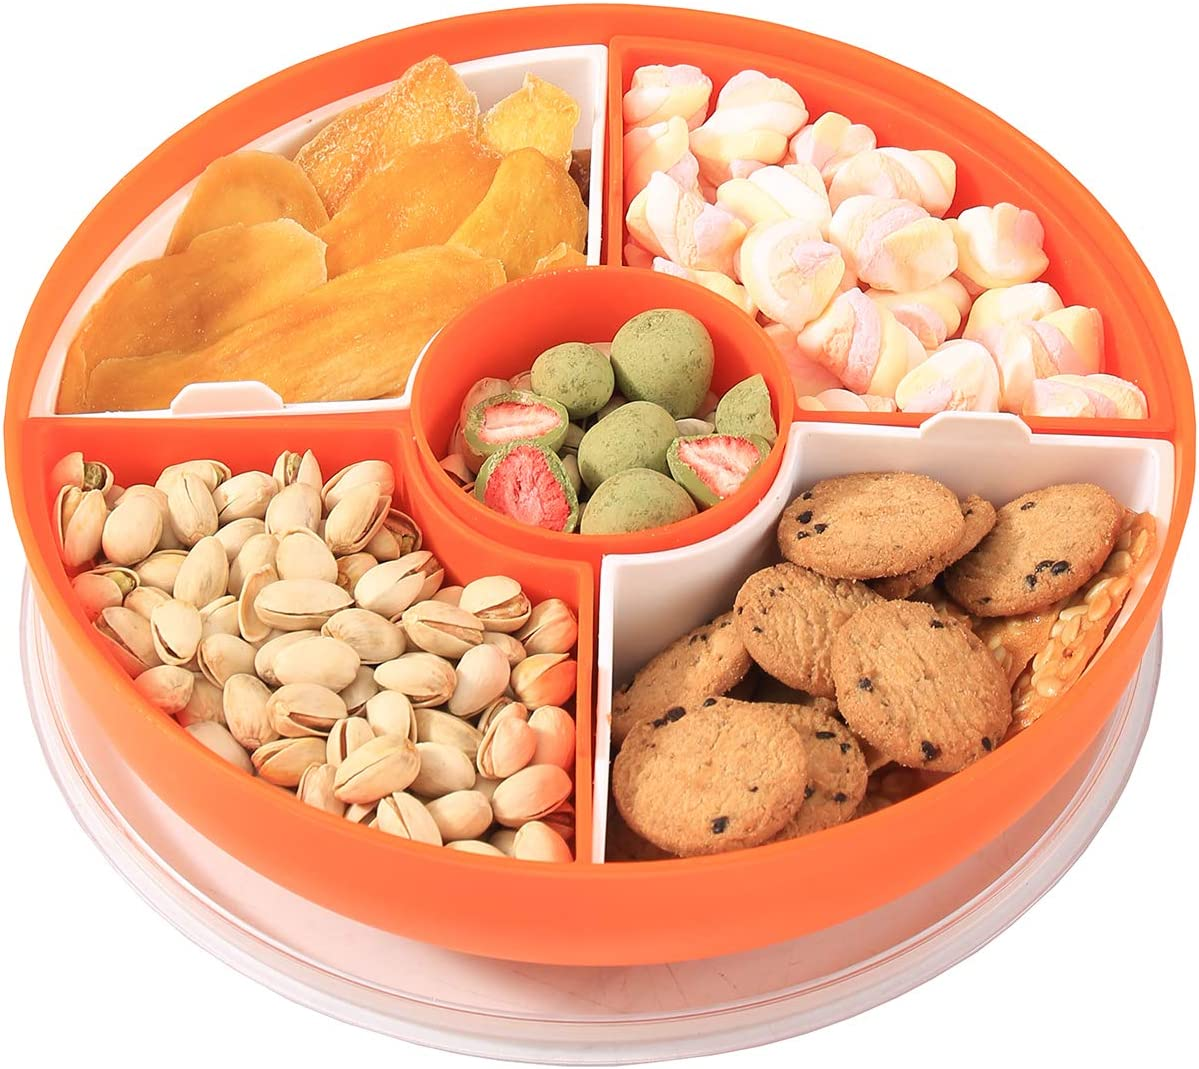 XKXKKE Divided Serving Dishes with Lid,Serving Bowls,Multifunctional Party Snack Tray for Fruits,Nuts,Candies,Crackers,Veggies (Orange)